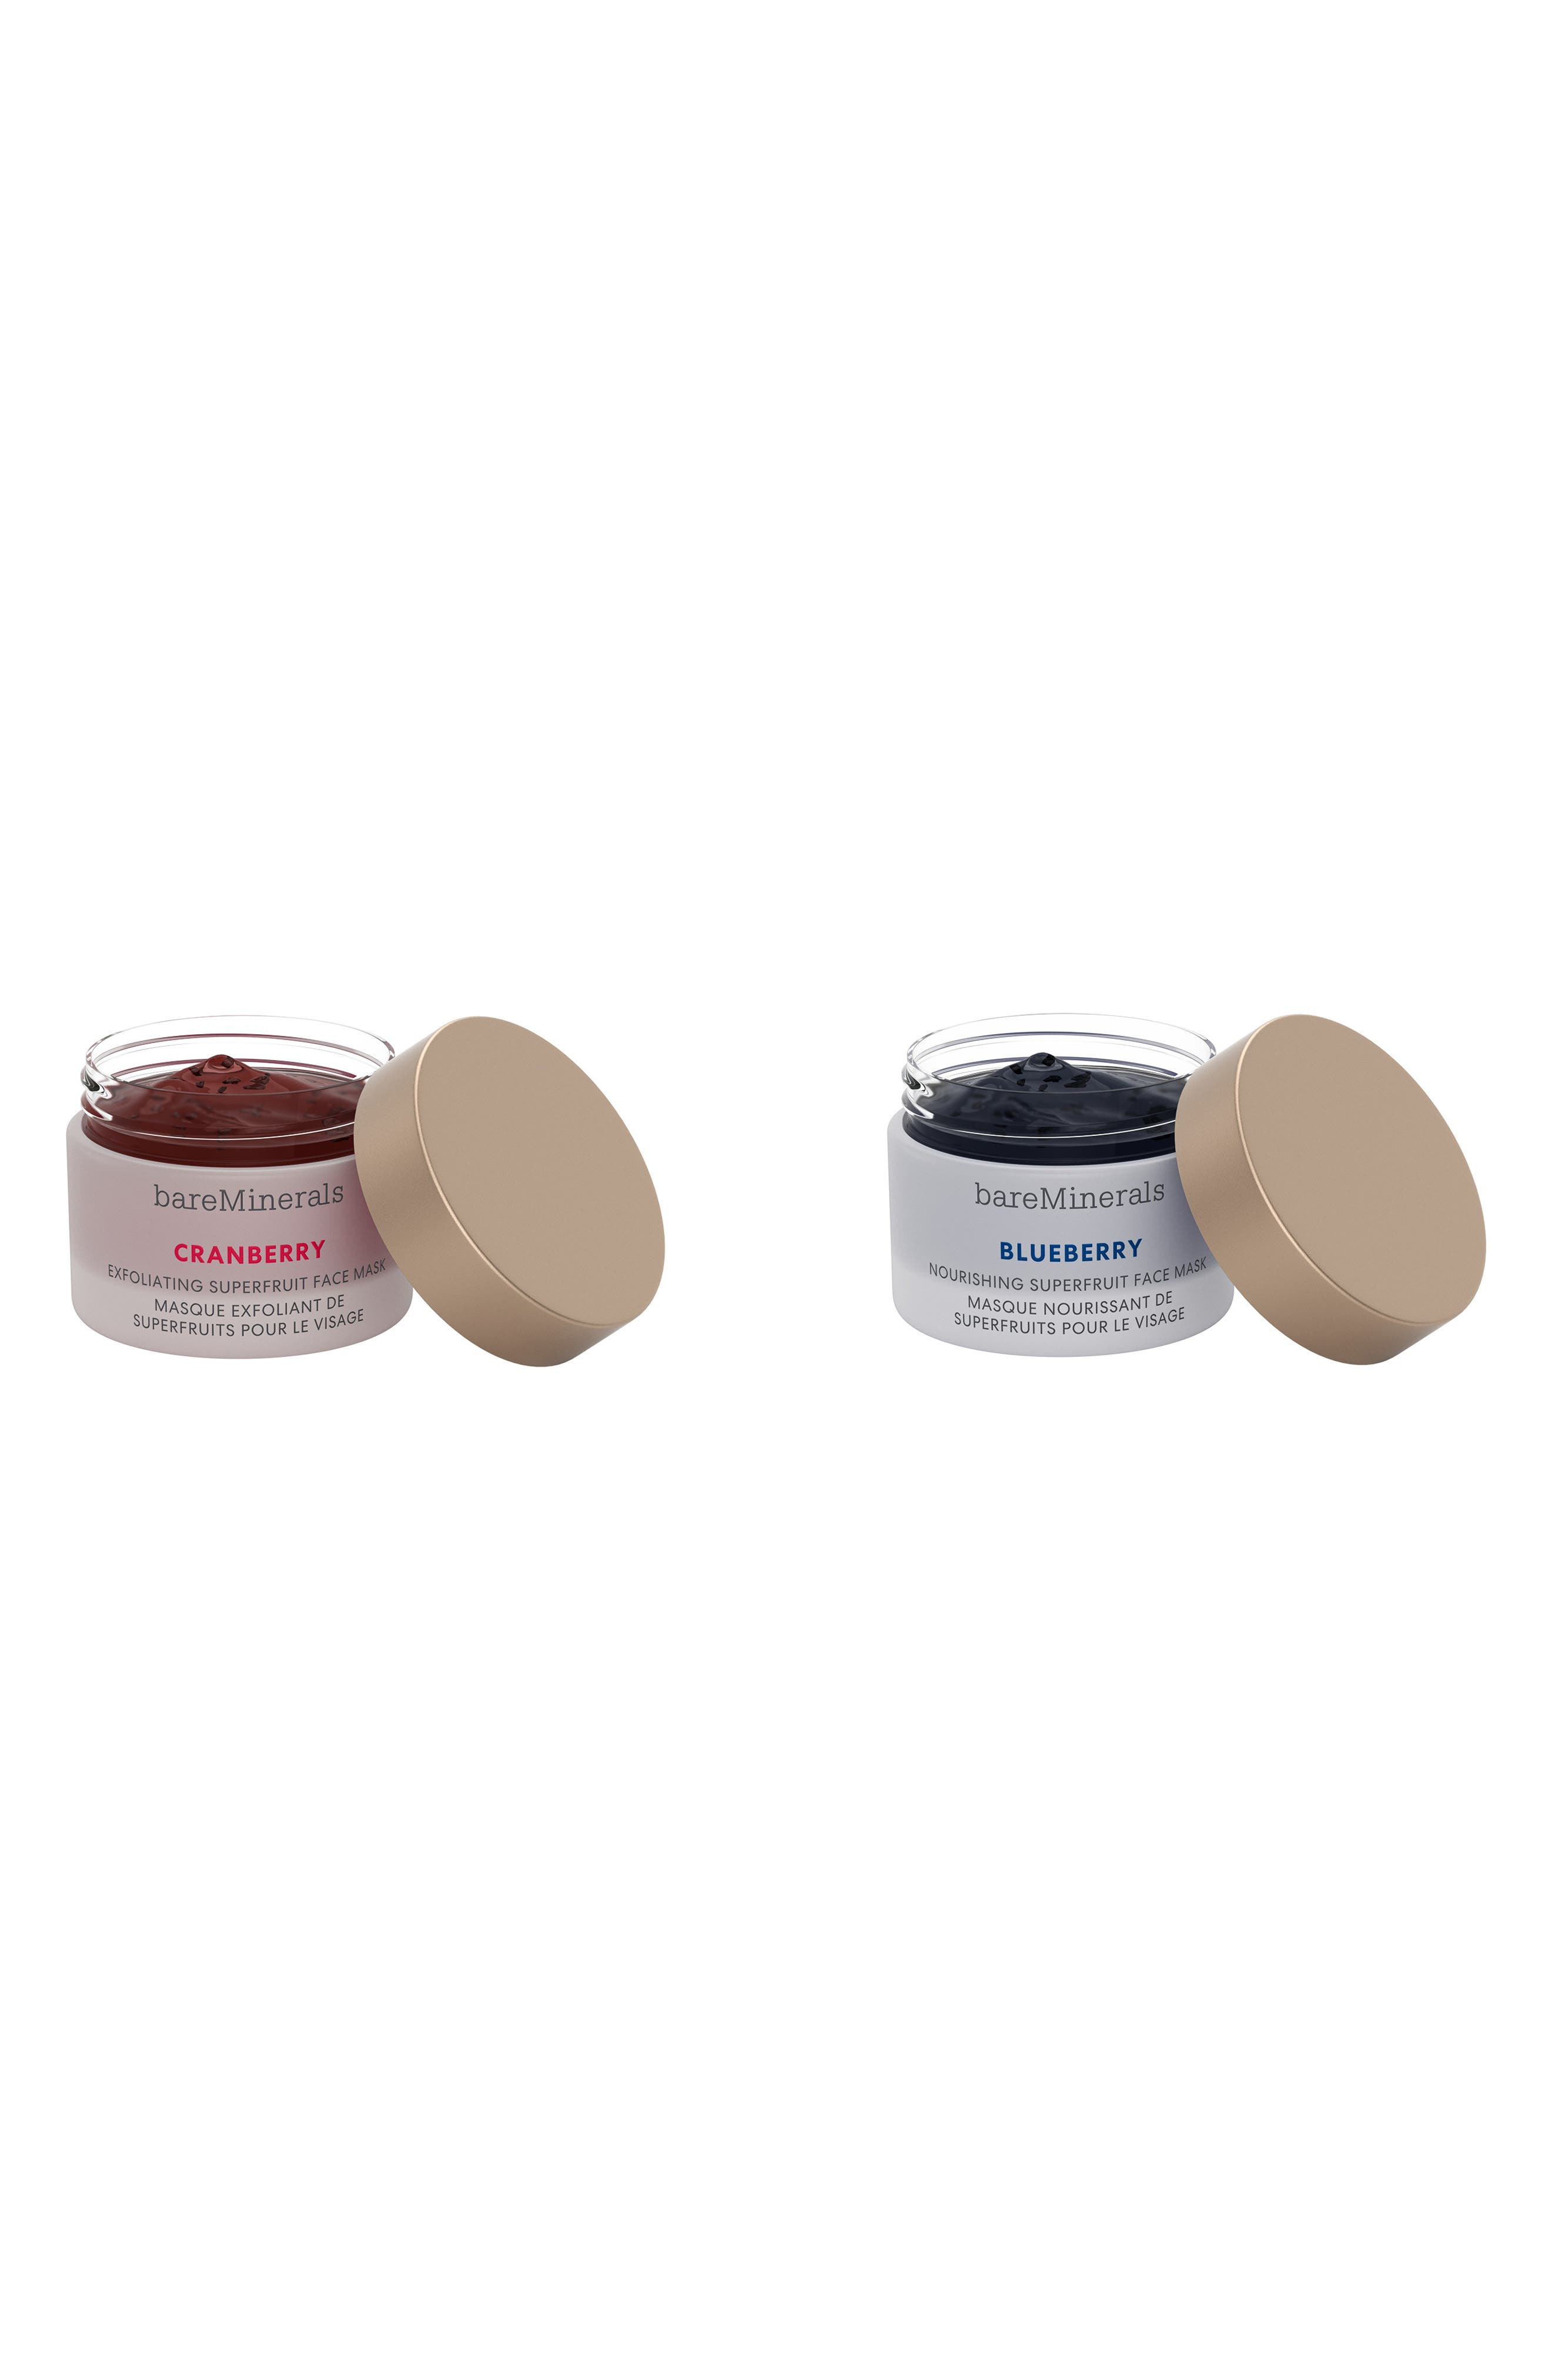 What it is: A limited-edition duo of antioxidant-rich superfruit face masks that help exfoliate and nourish skin. What it does: Perfect on their own or for multimasking, this duo delivers the ultimate self-care moment for you or someone special. This season, bareMinerals is making gifting planet-friendly by minimizing plastic across their holiday collection. The brand has eliminated unnecessary packaging, incorporated post-consumer recycled